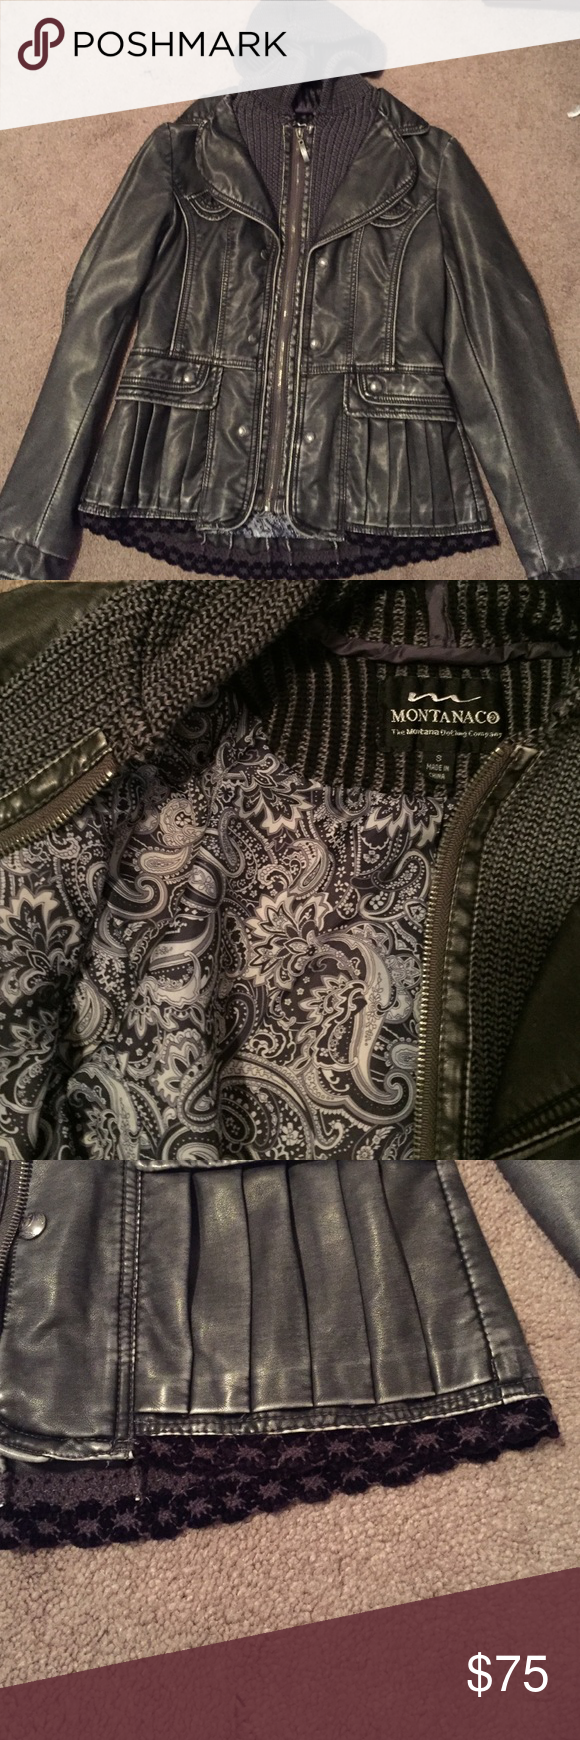 Montanaco leather jacket (small) Montana clothing company, nice leather jacket only worn twice. I love it but I never wear it. Extremely cute especially if you are going out and about, or to a nice place. :) no trades. Willing to negotiate just make an offer Jackets & Coats